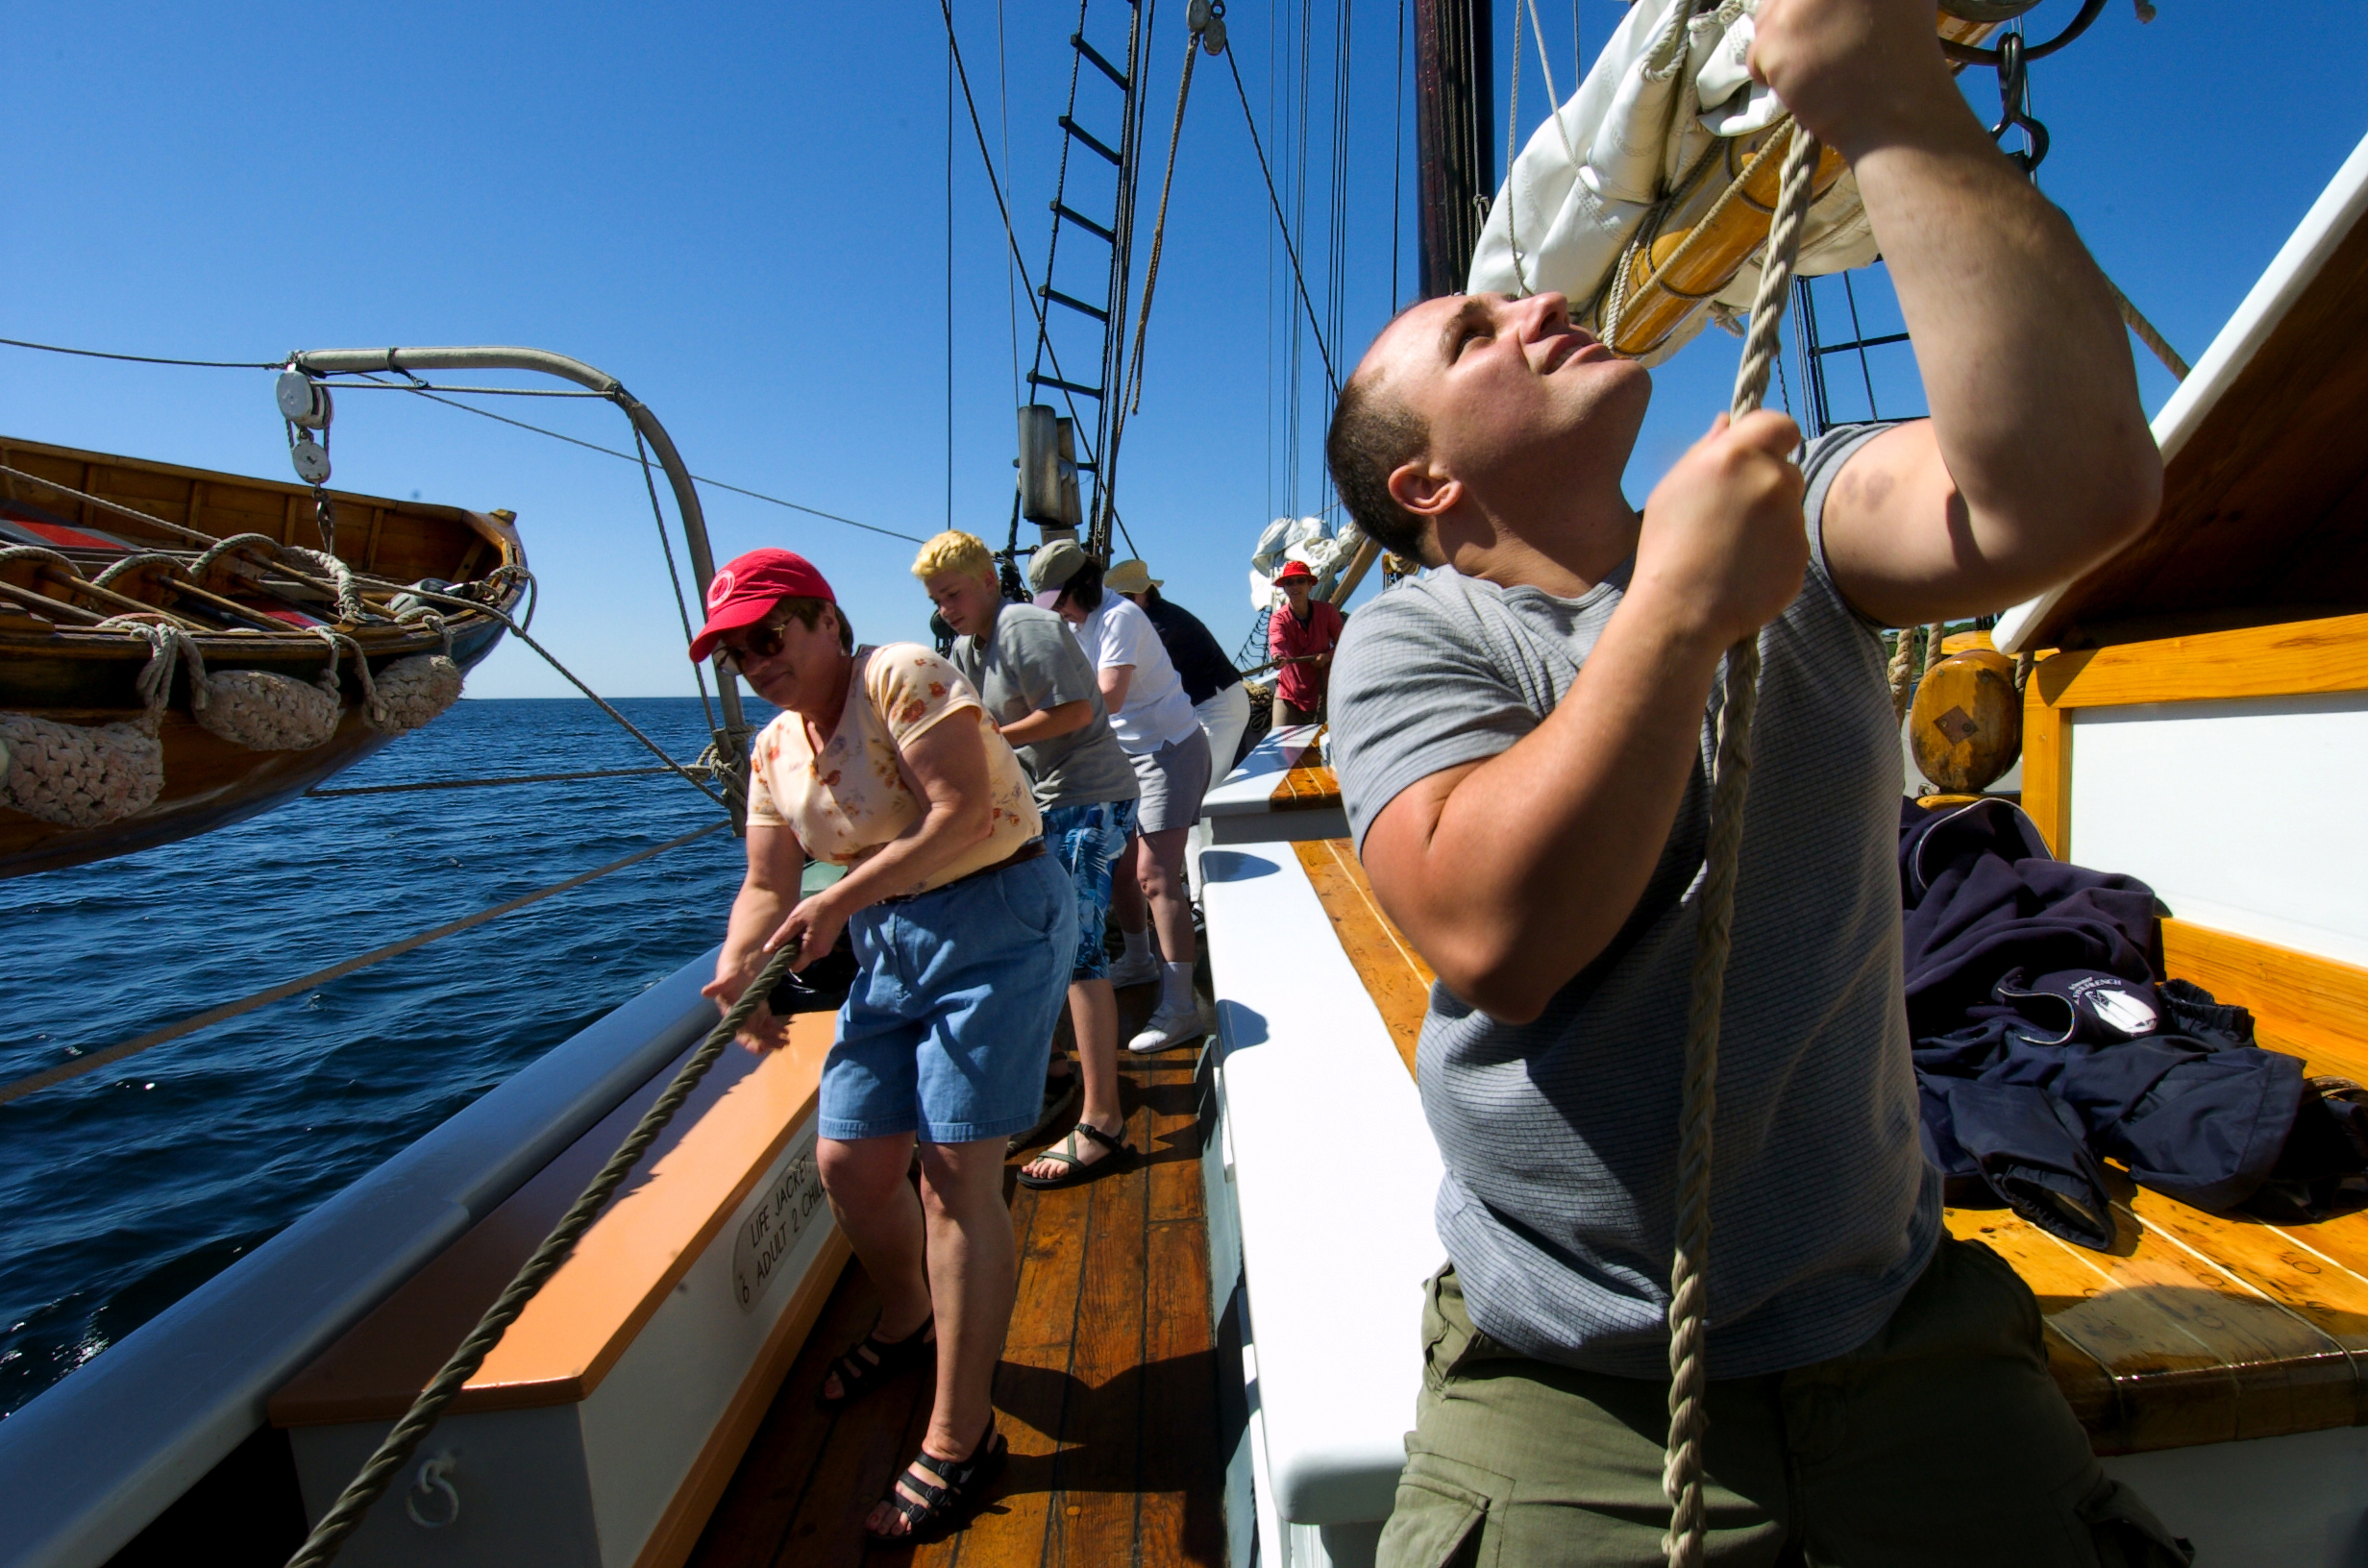 Sailing aboard the Lewis R French